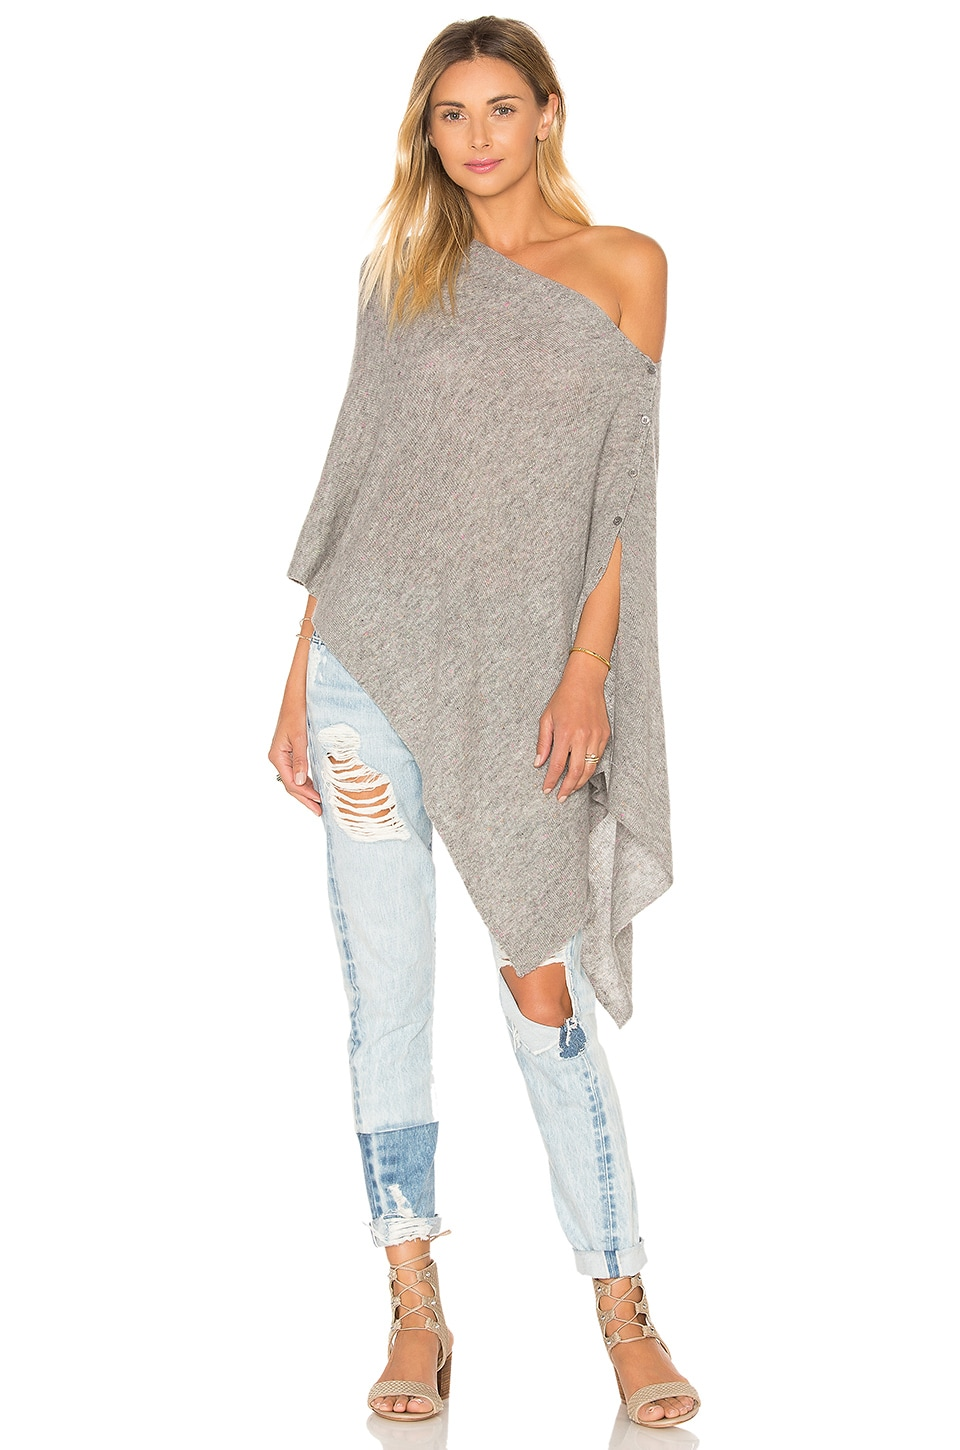 27 miles malibu Chumash Crop Poncho in Granite